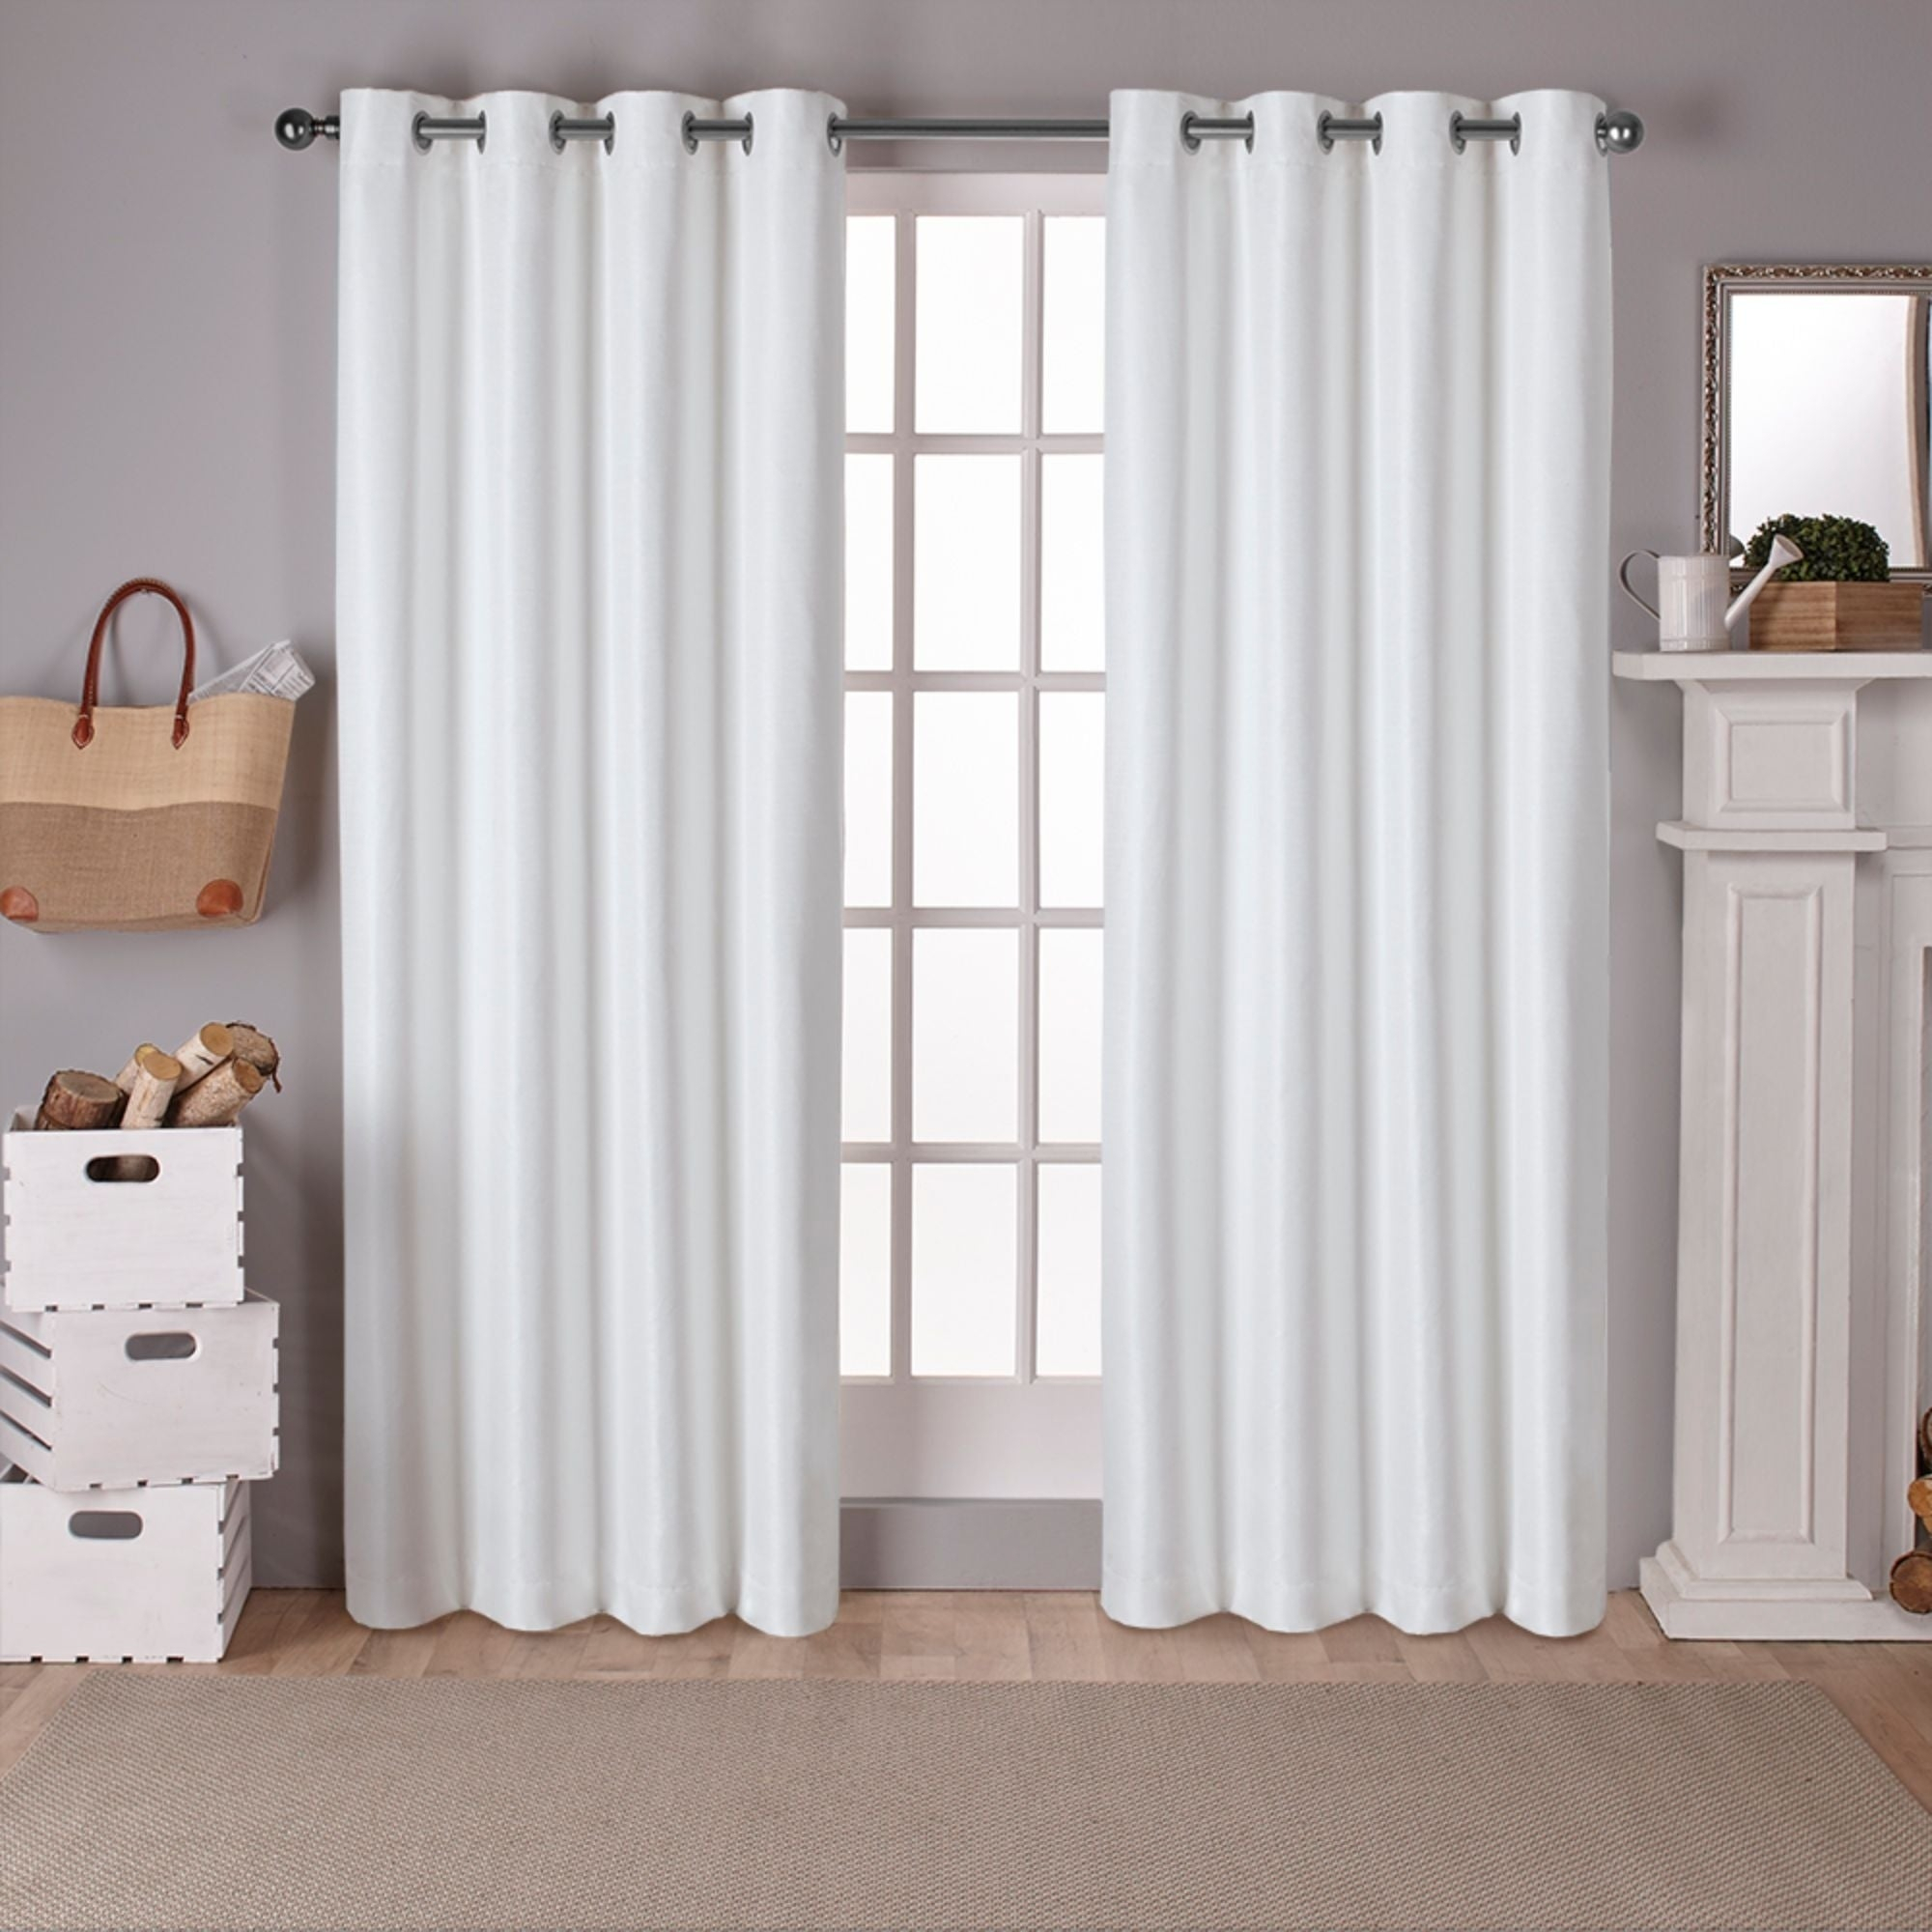 Porch & Den Patchen Raw Silk Thermal Insulated Grommet Top Curtain Panel Pair In Raw Silk Thermal Insulated Grommet Top Curtain Panel Pairs (View 6 of 20)